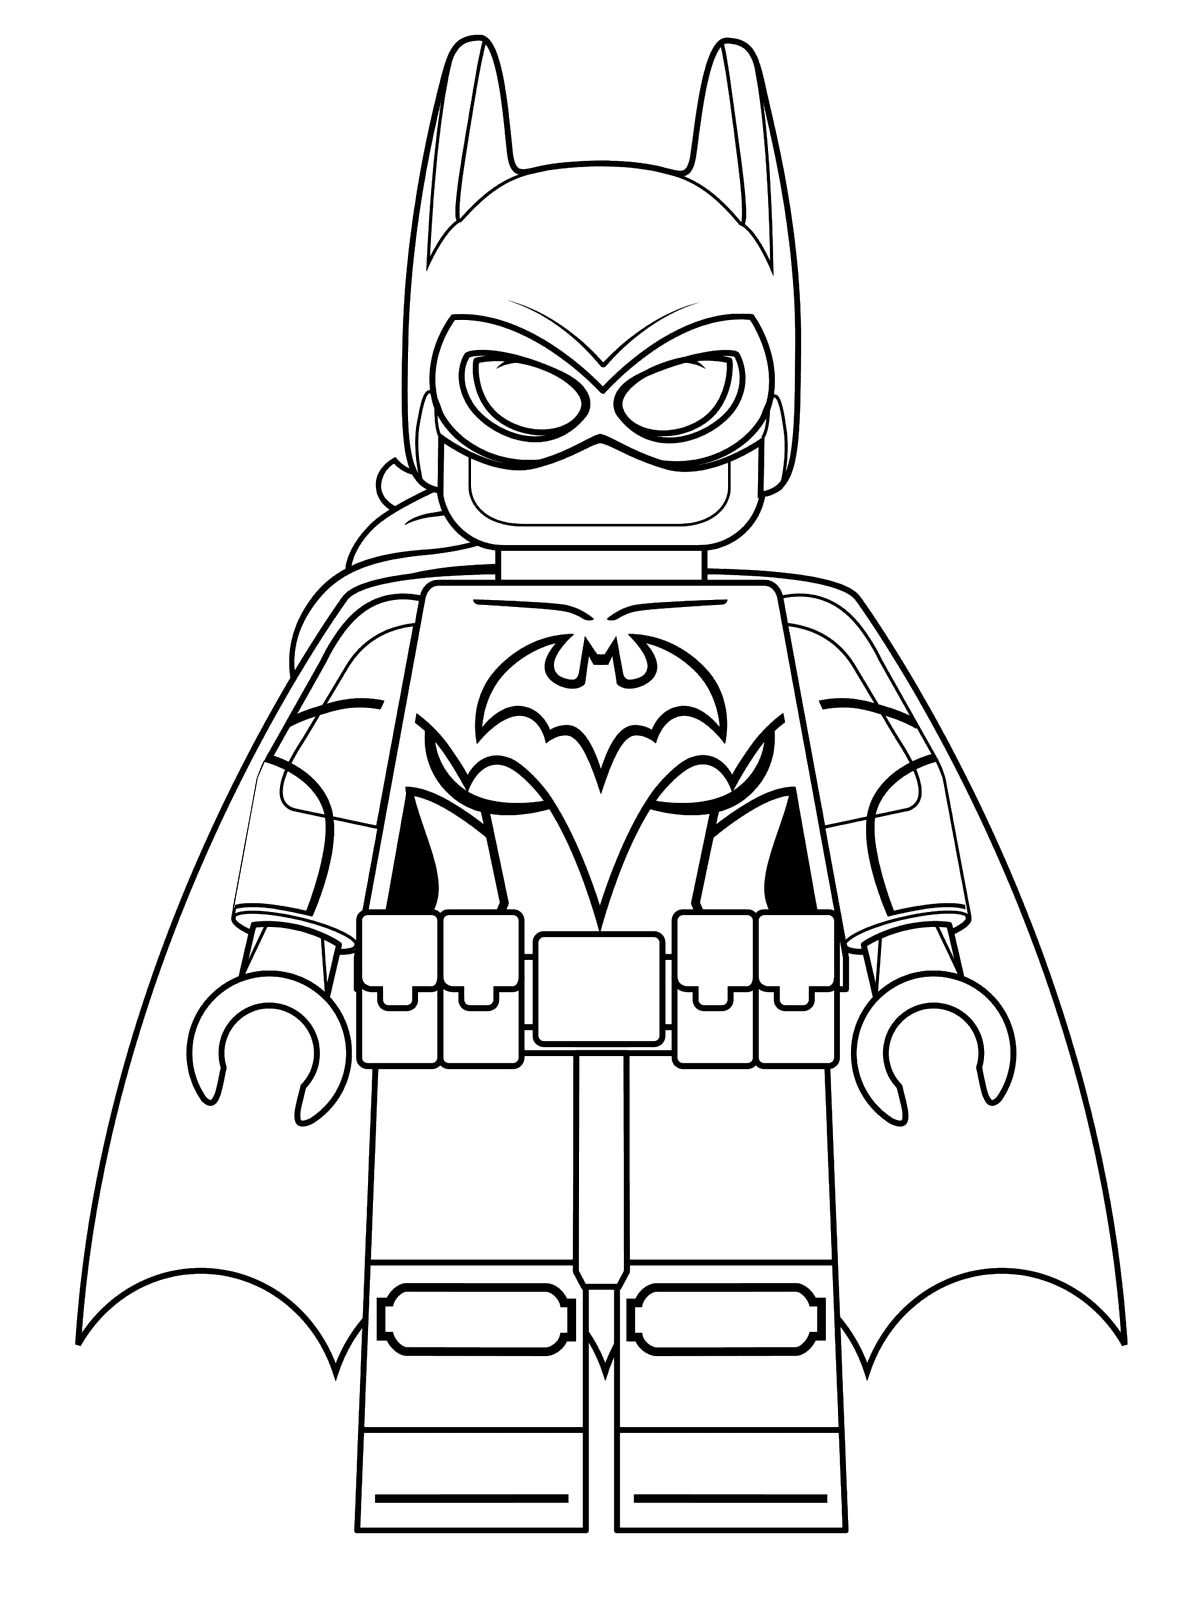 coloring lego printables free printable lego coloring pages paper trail design lego printables coloring